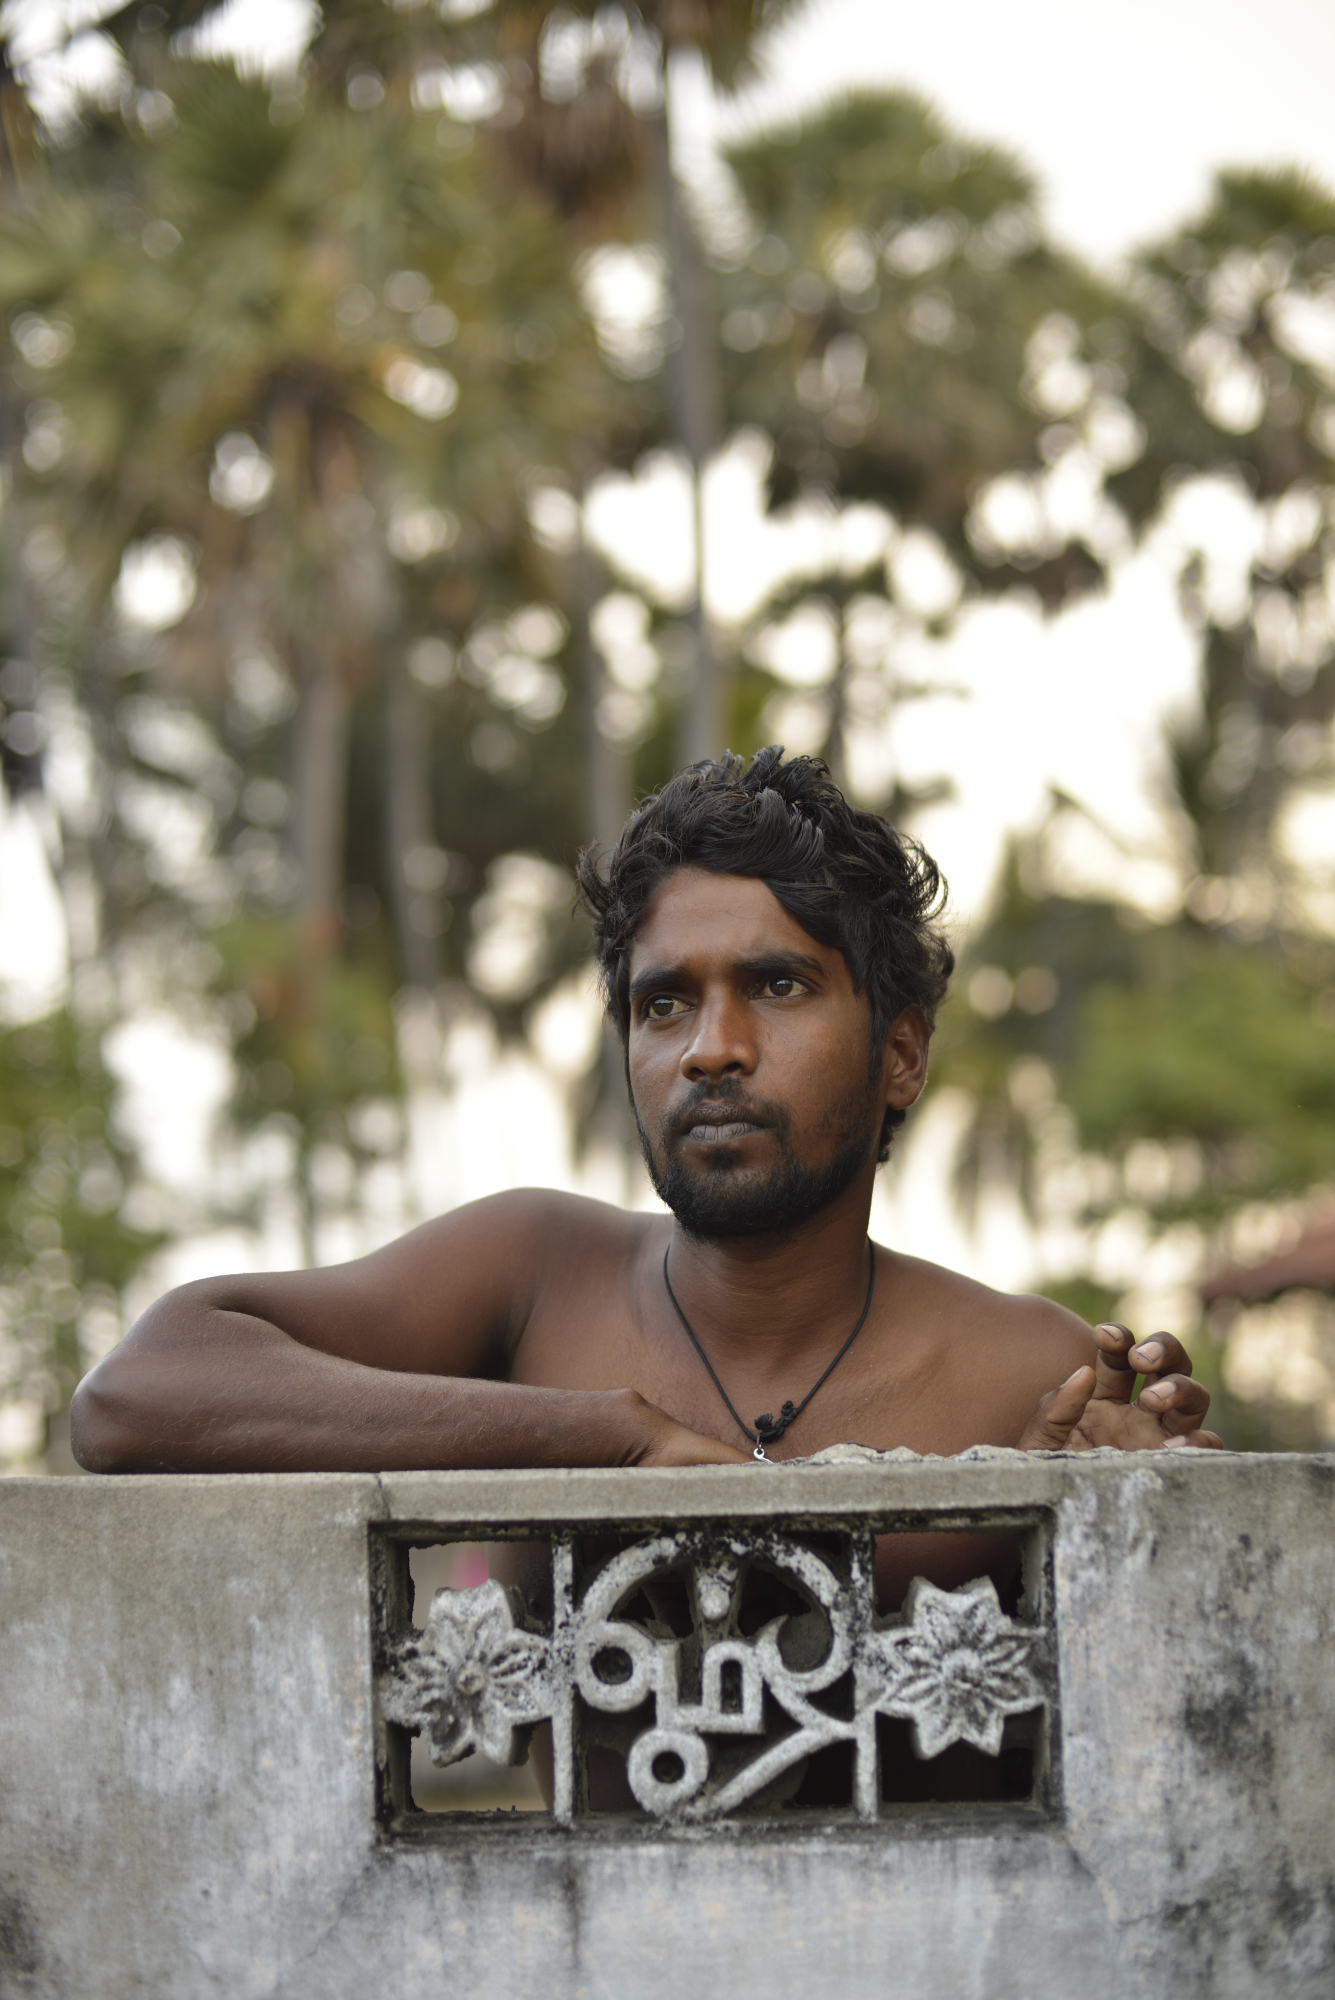 The work is difficult, poorly-paid and dangerous; injuries are common. Sandhuran, 26, gave up tapping because of the dangers. He now works as a construction laborer, one of the few occupations open to members of the Nalavar caste besides tapping.